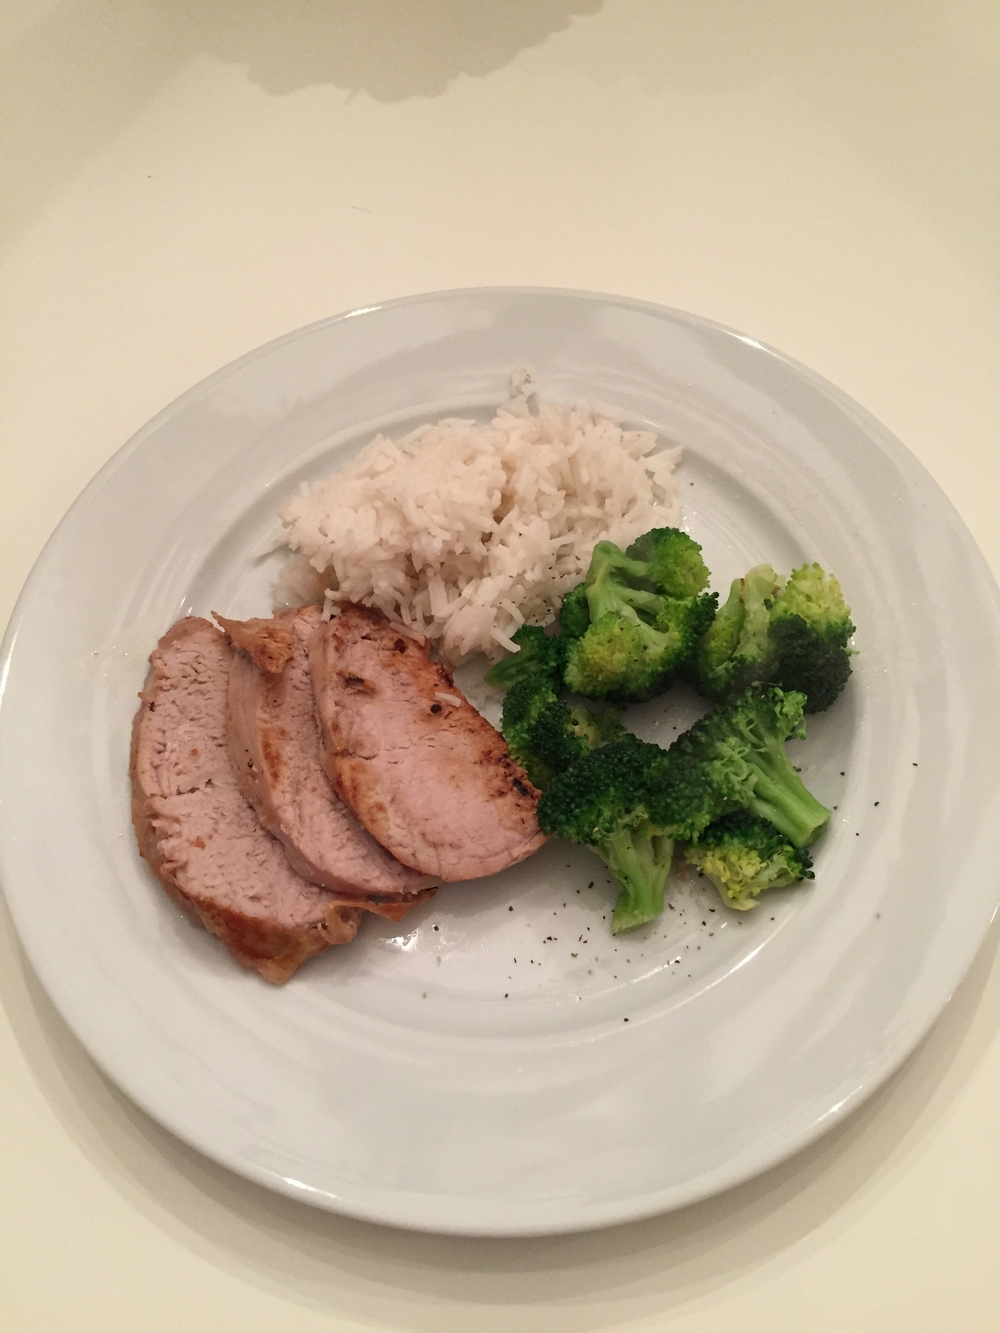 pork tenderloin with steamed broccoli and rice